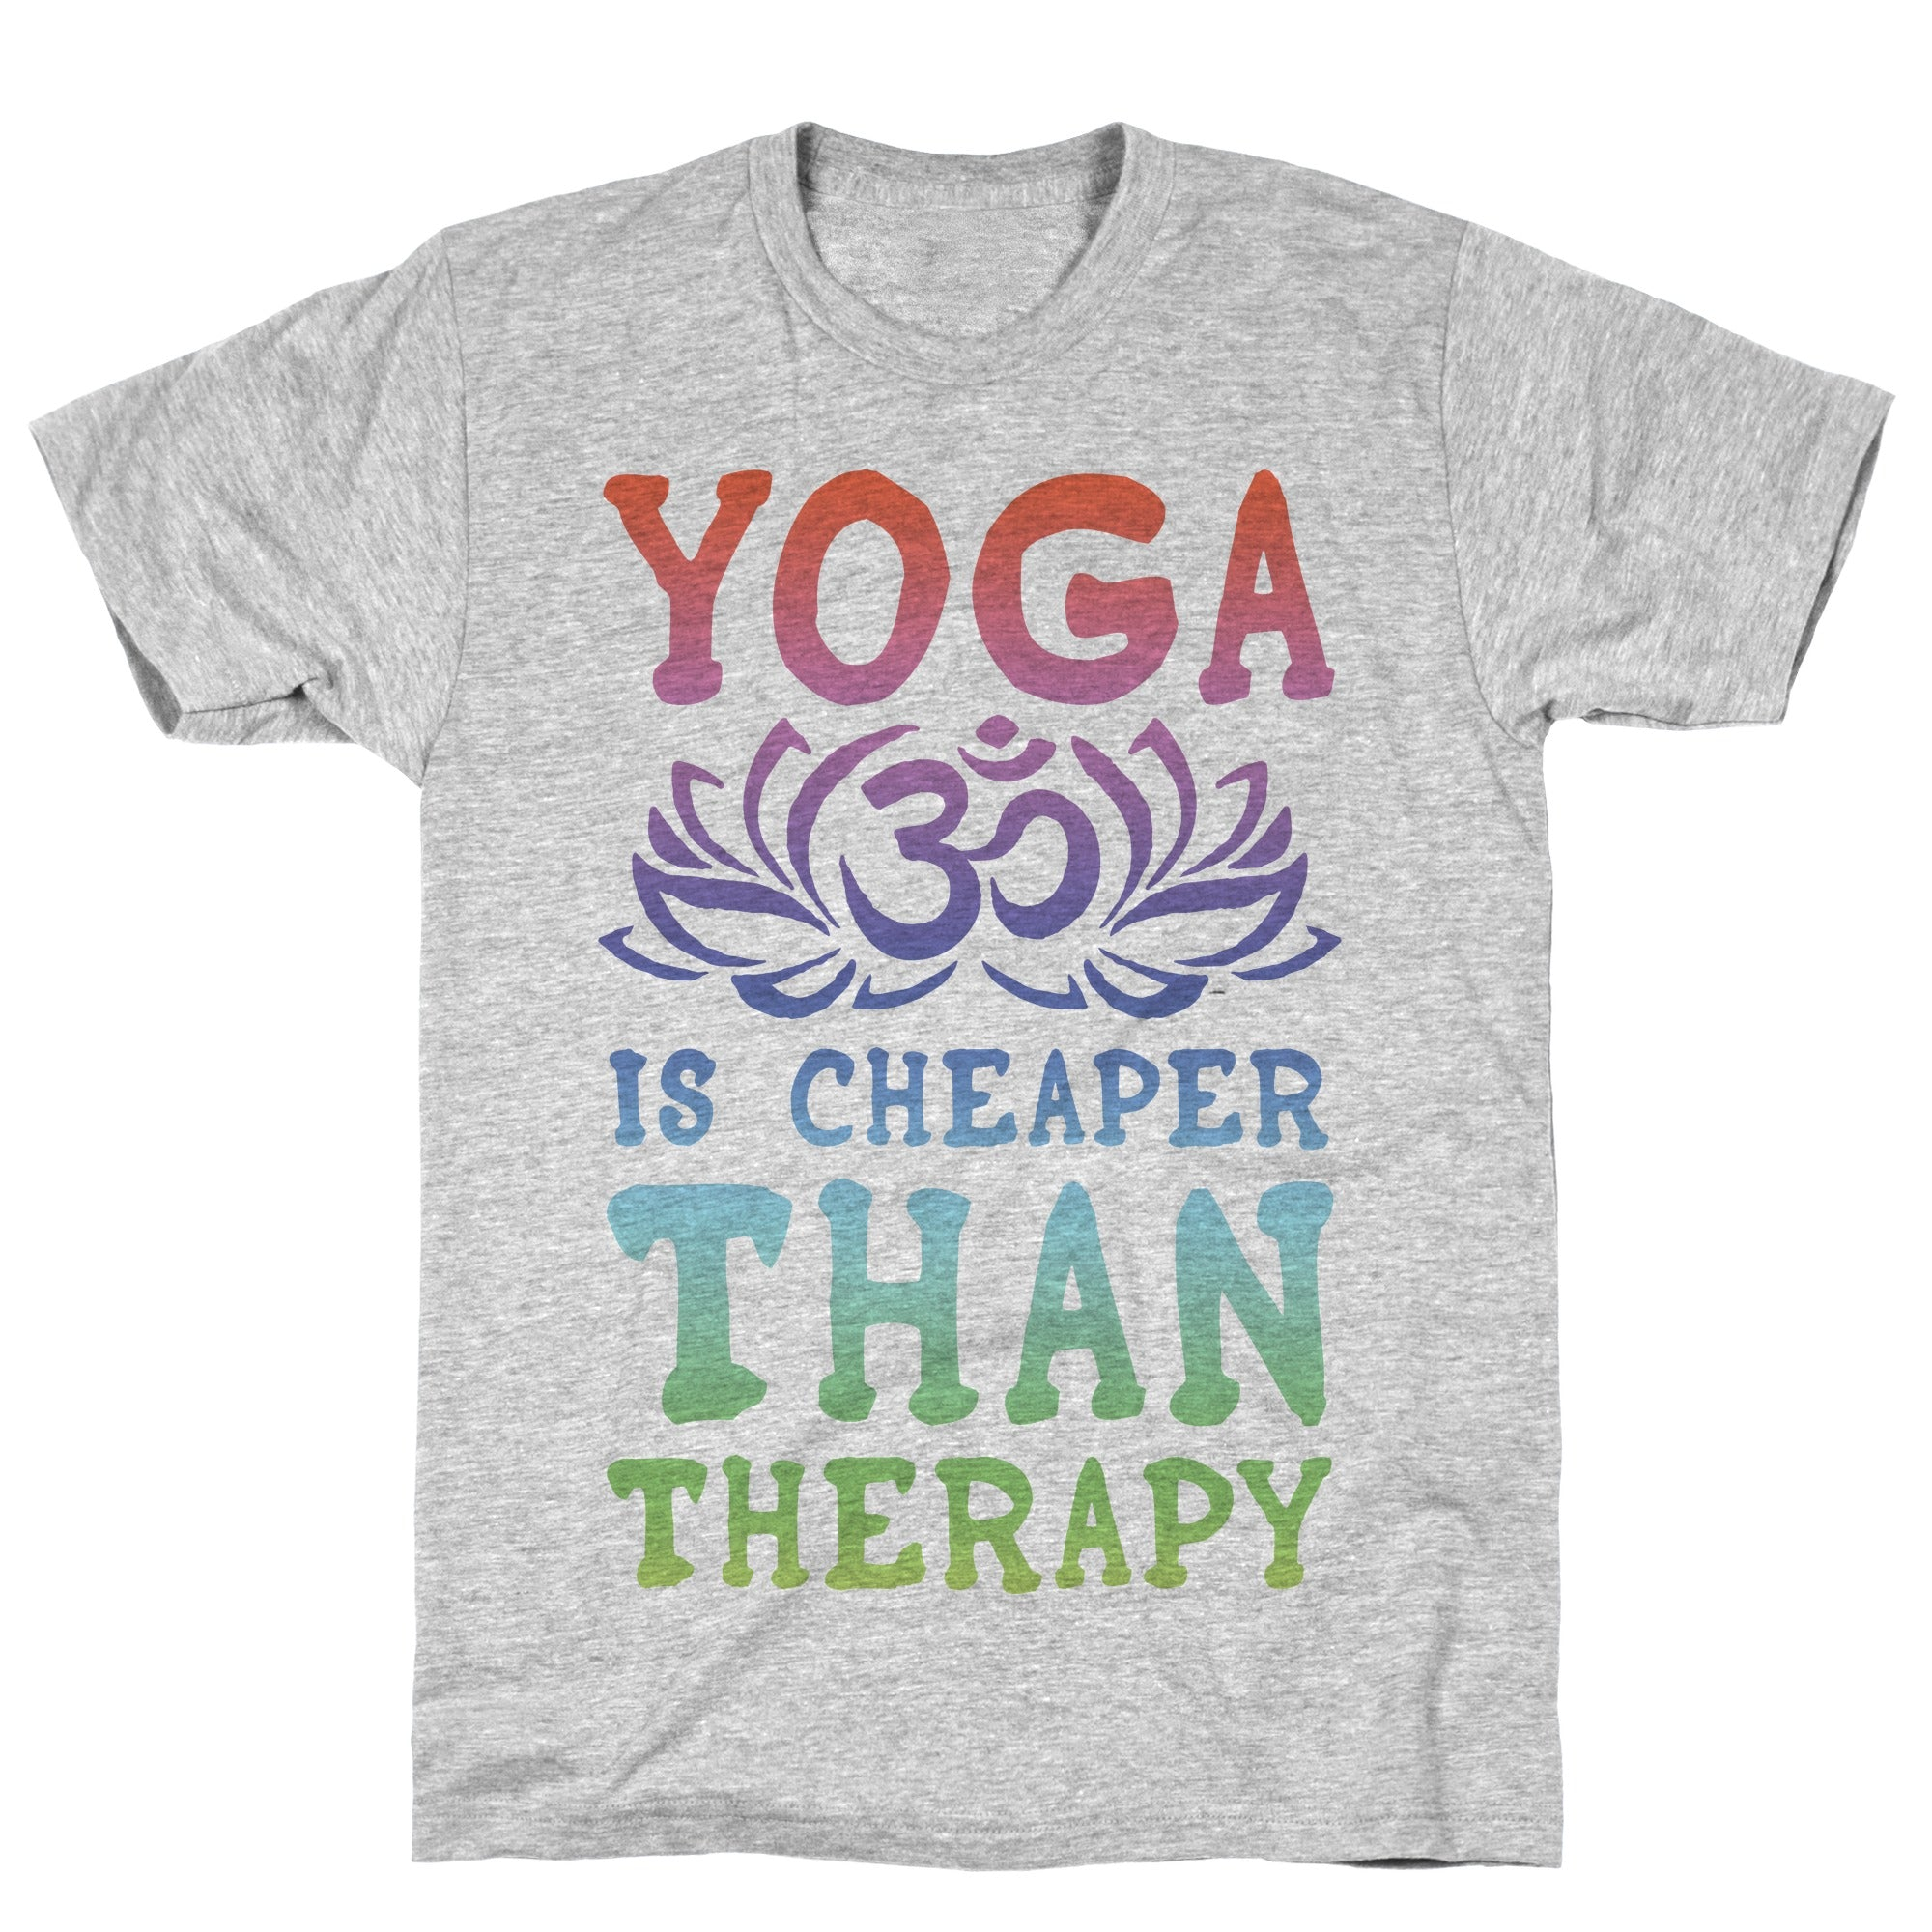 Yoga is Cheaper Than Therapy Athletic Gray Unisex Cotton Tee